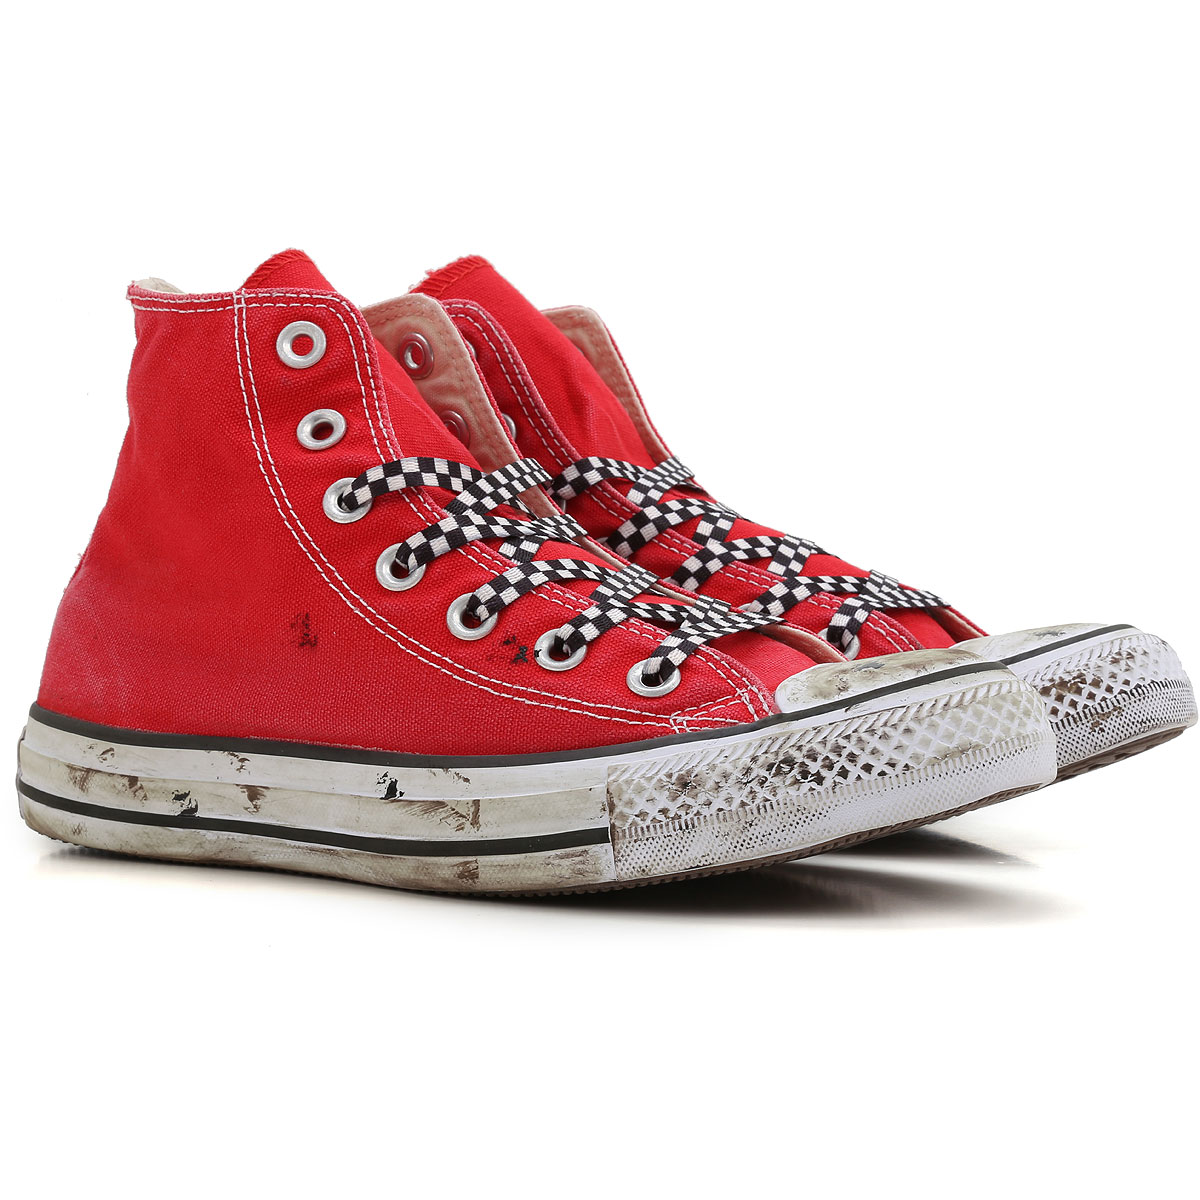 Ross Shoes Womens Converse